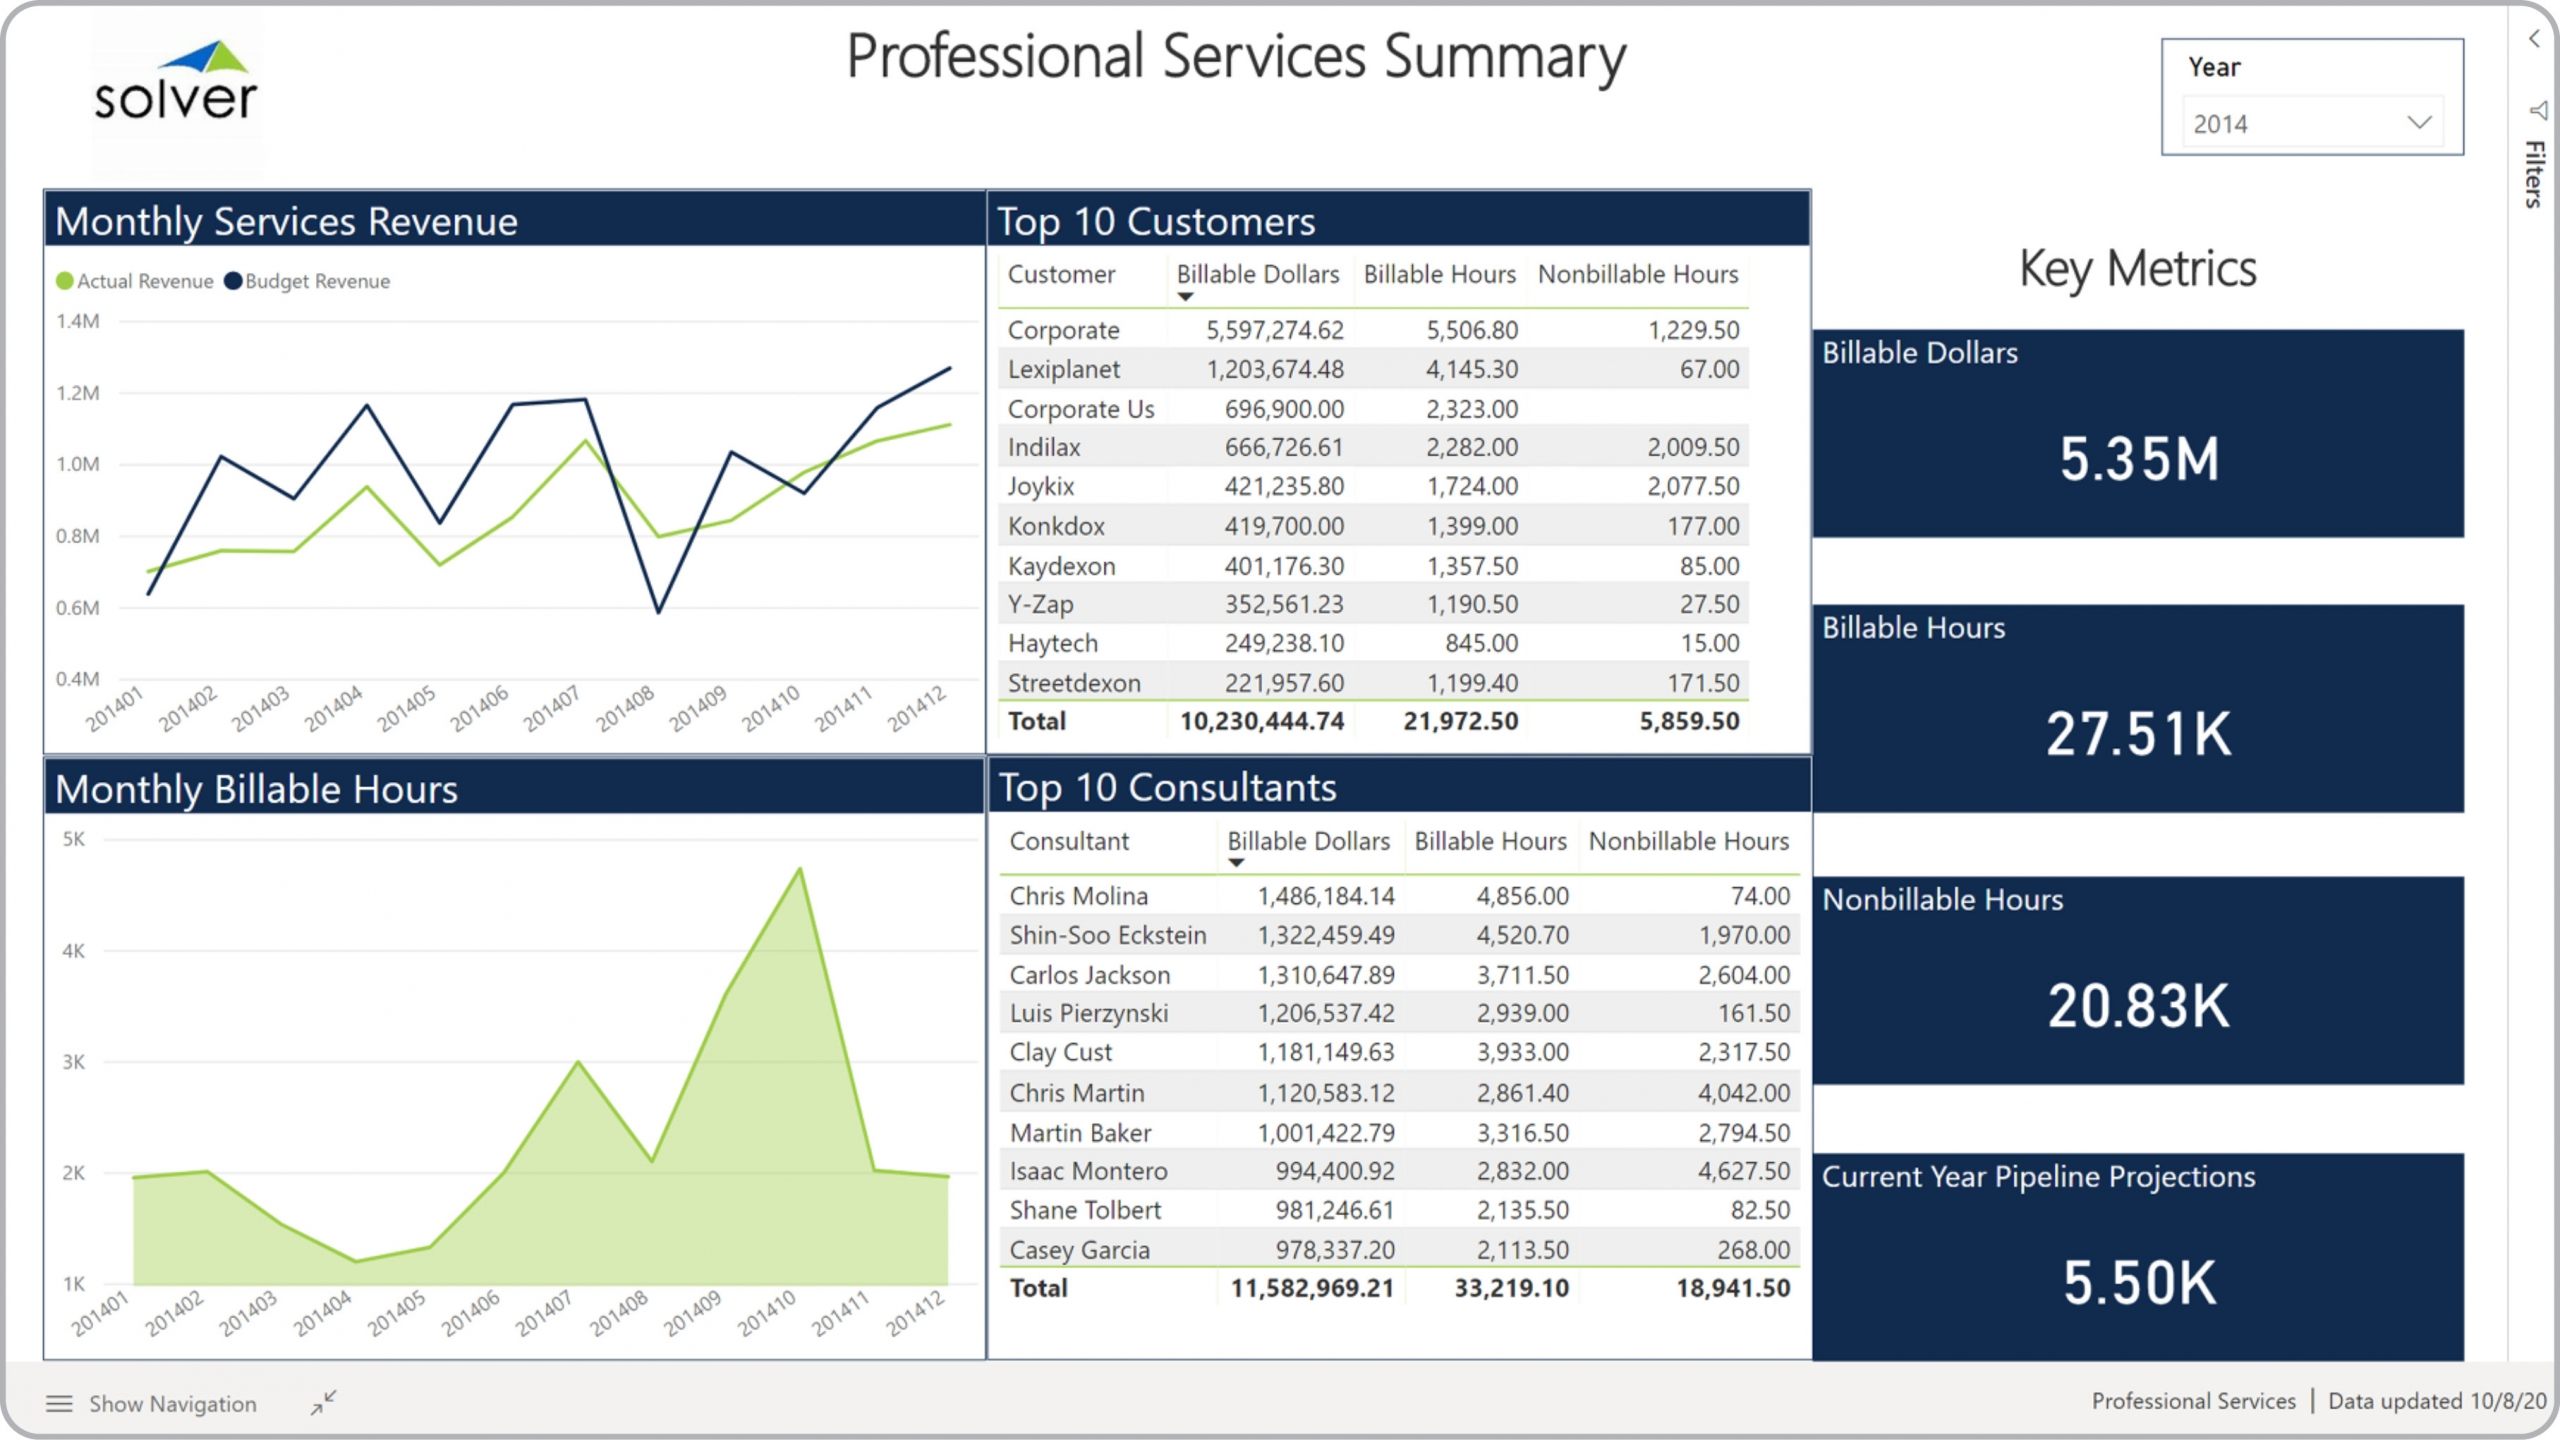 Example of a Billing KPI Dashboard for a Professional Services Company